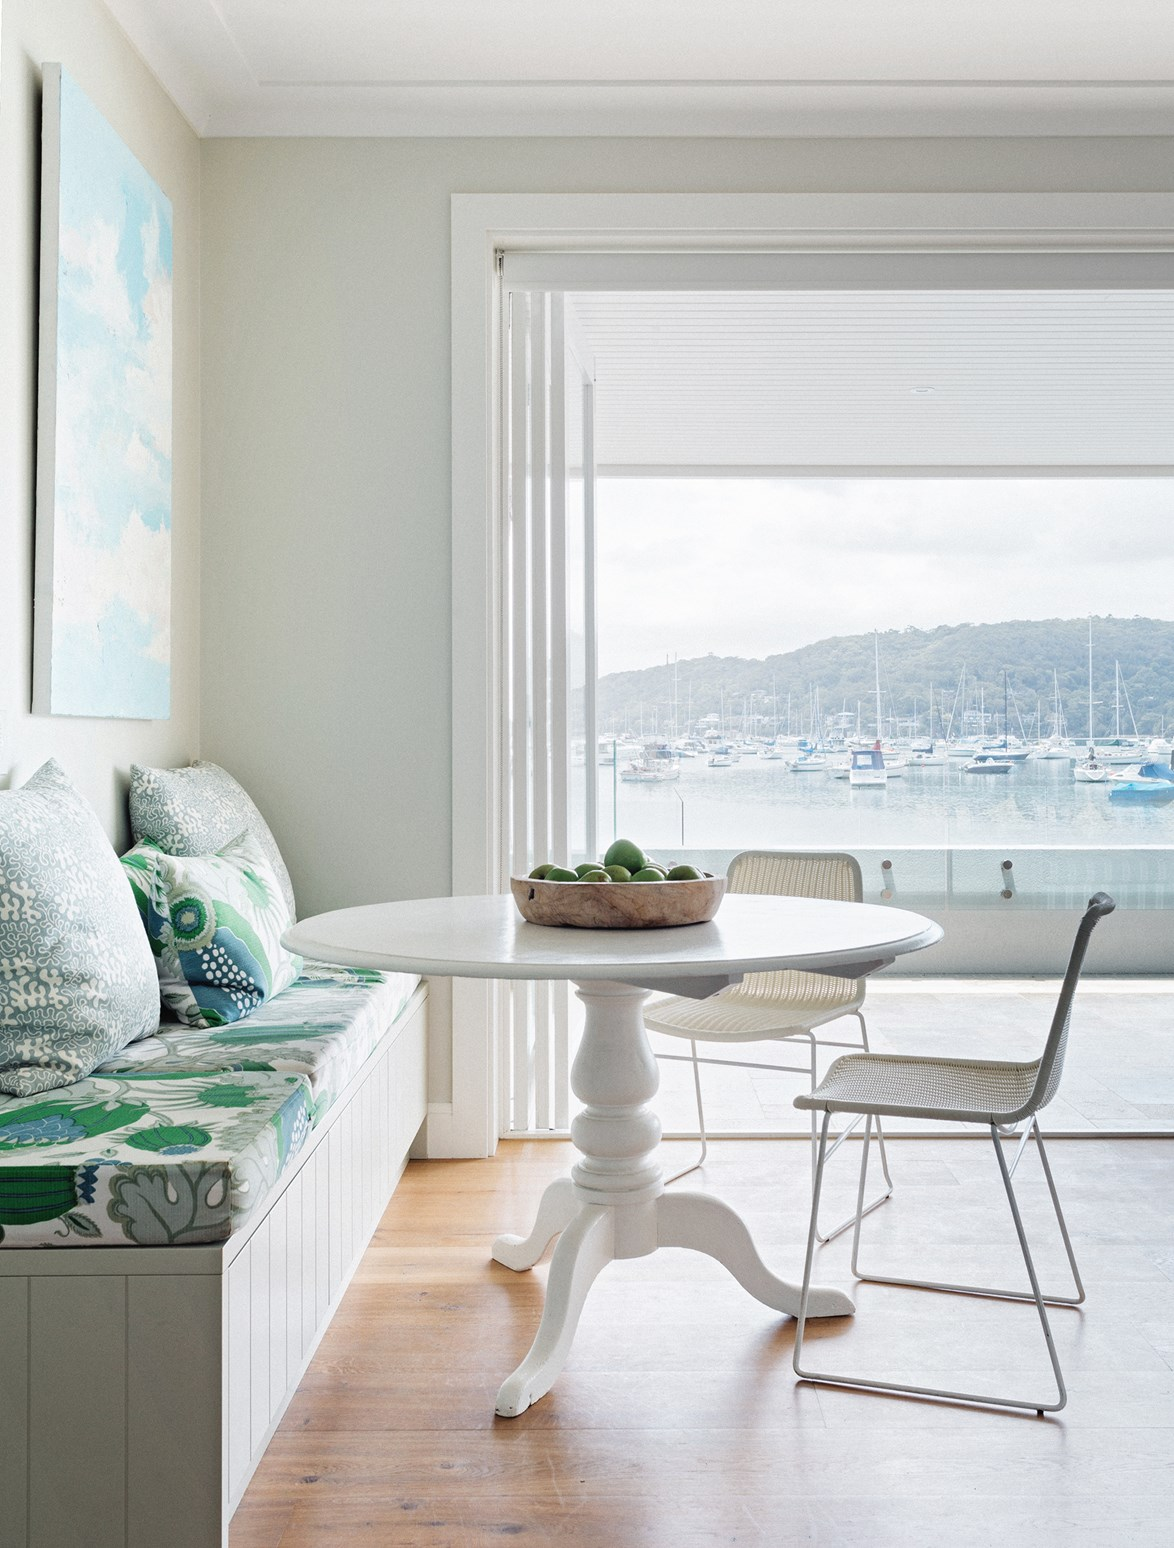 A simple artwork and patterned seat cushion add vibrancy to this monochromatic dining nook. *Photo: Felix Forest*